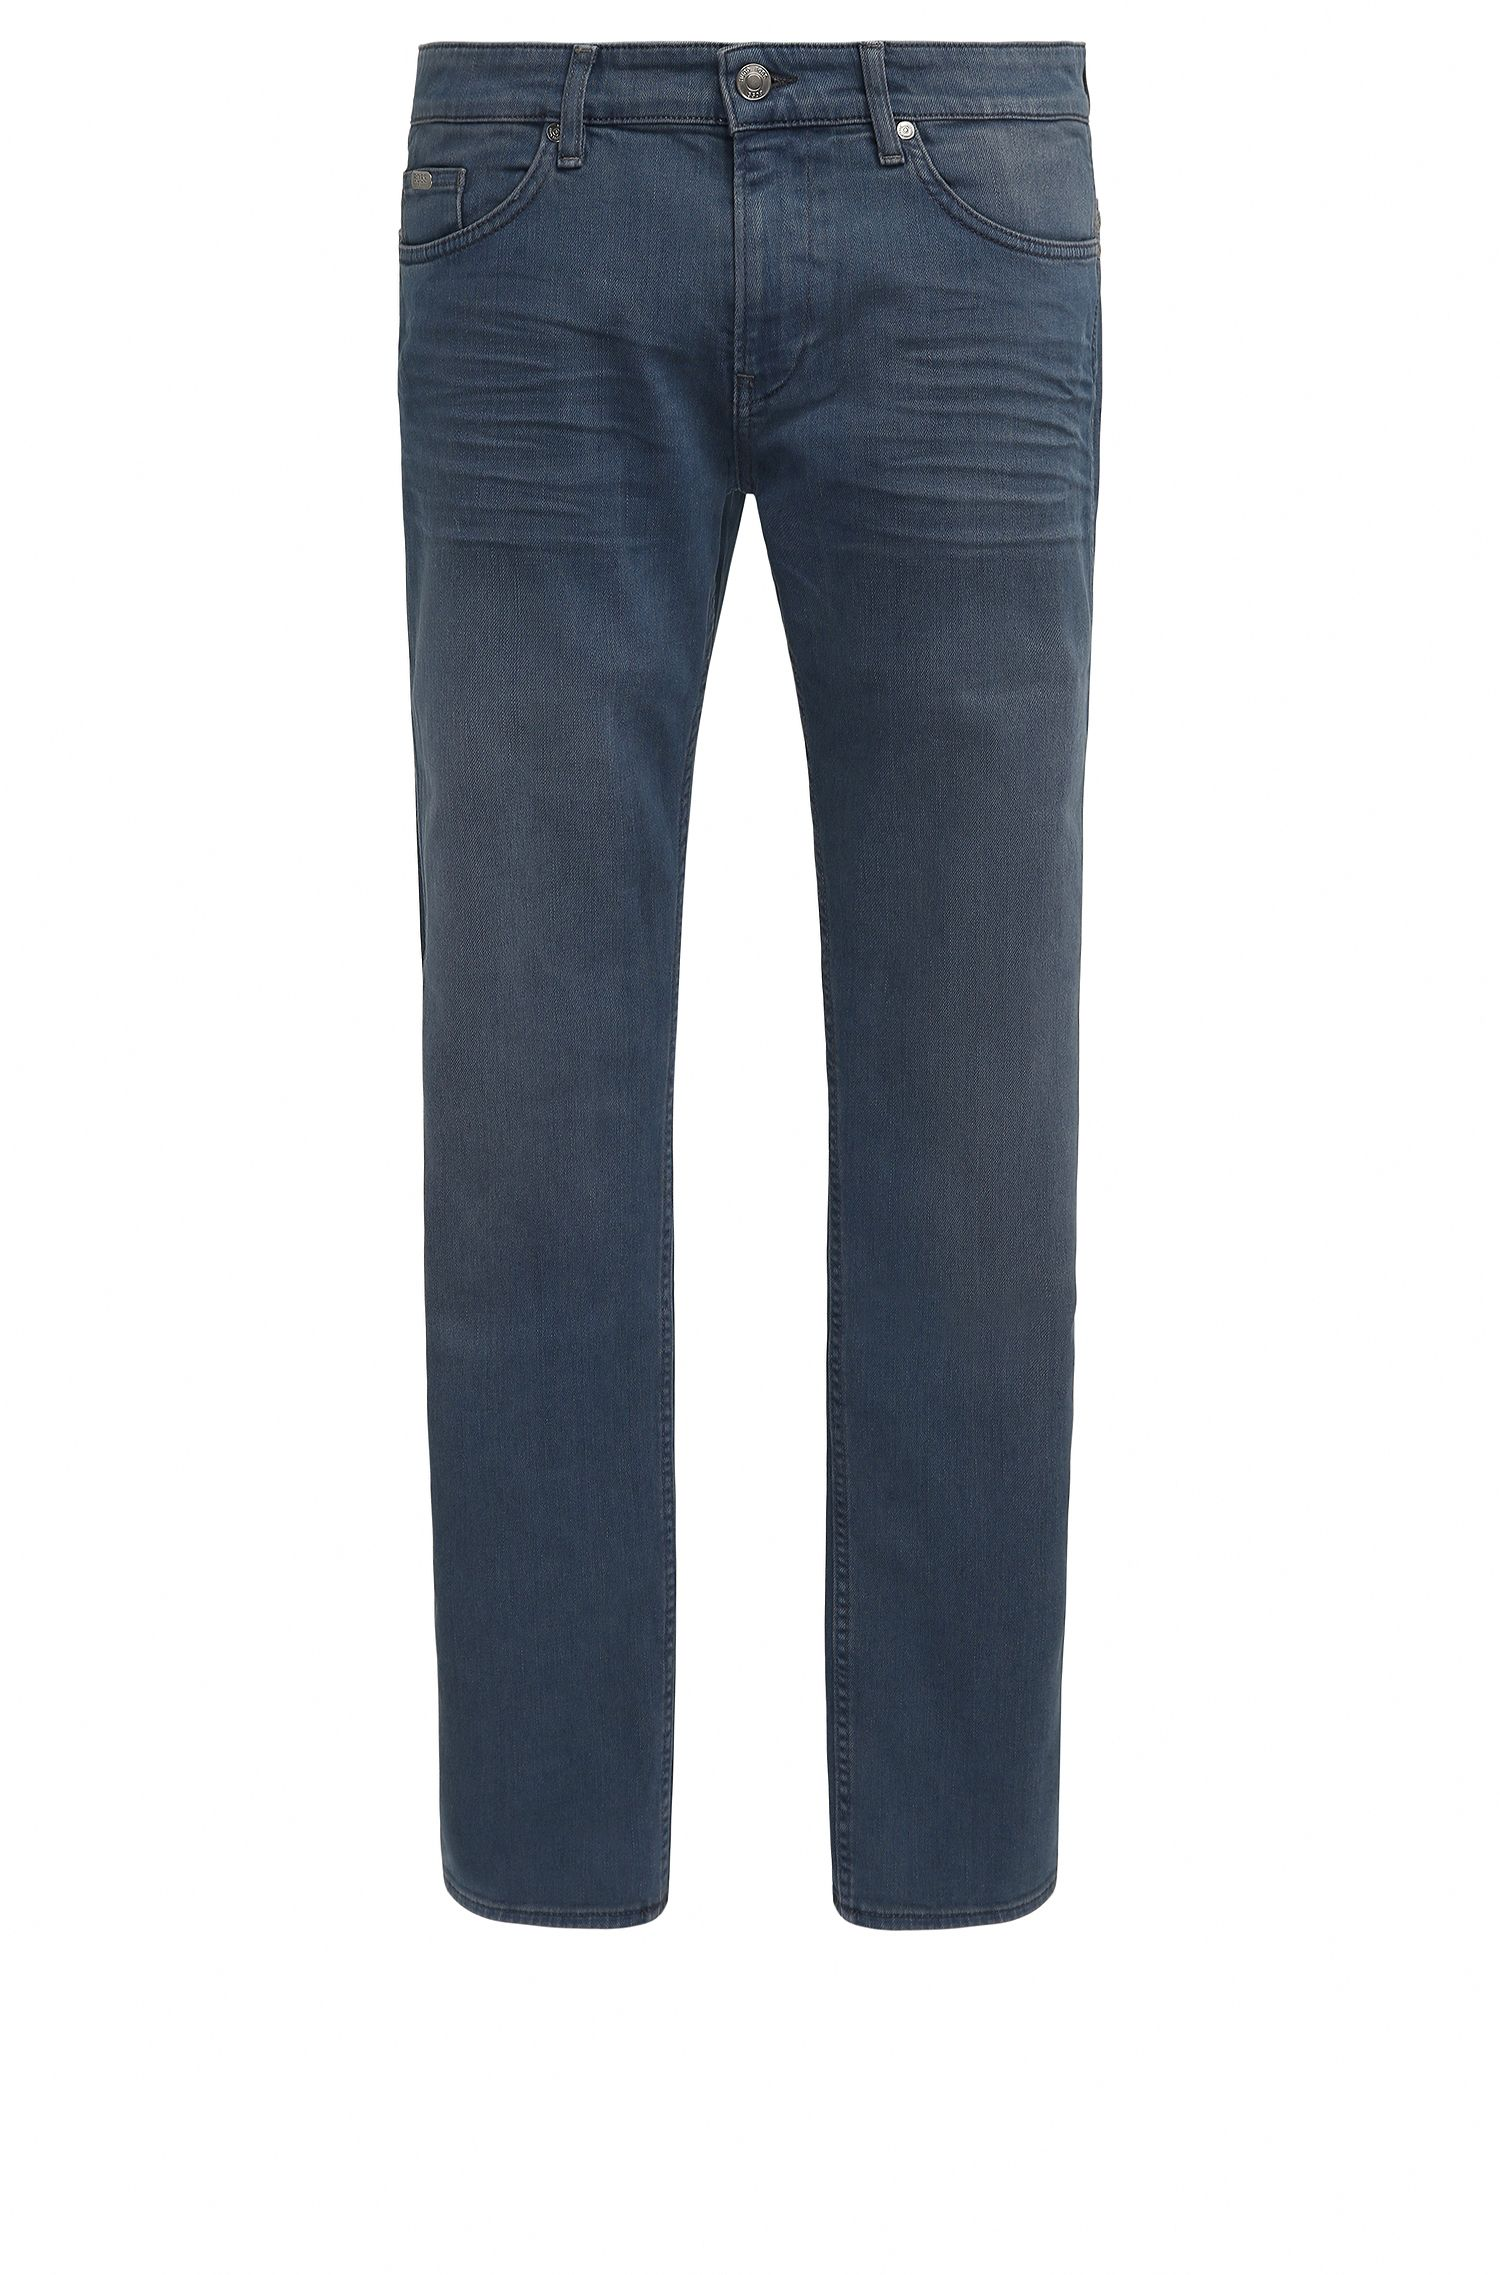 Jeans Slim Fit en denim surteint